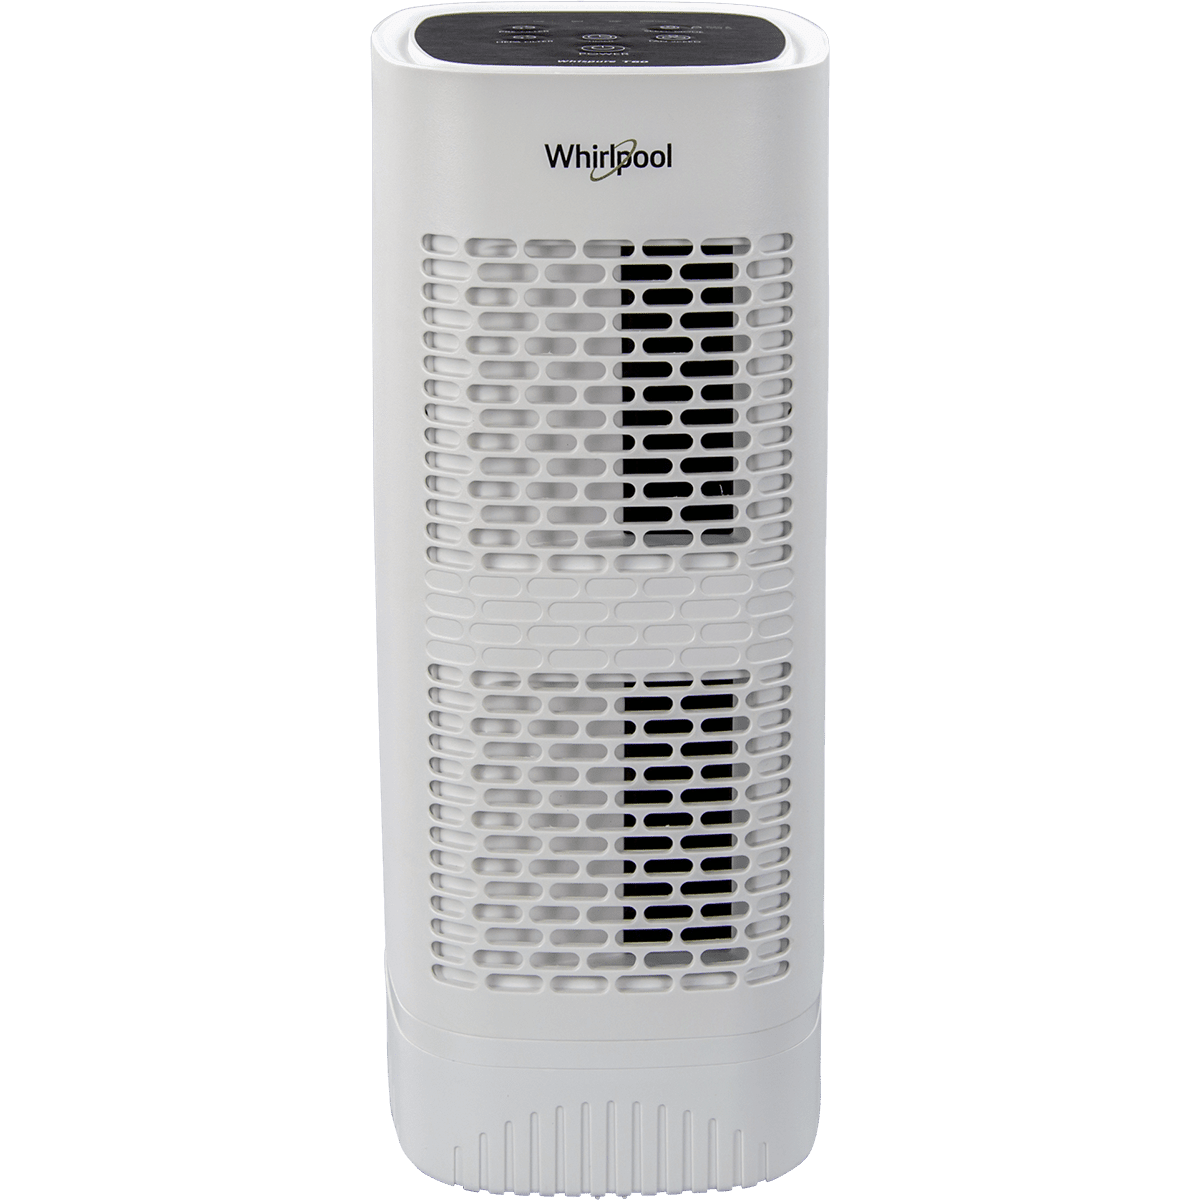 Whirlpool Whispure WPT60 Small Tower Air Purifier – Pearl White – WPT60P